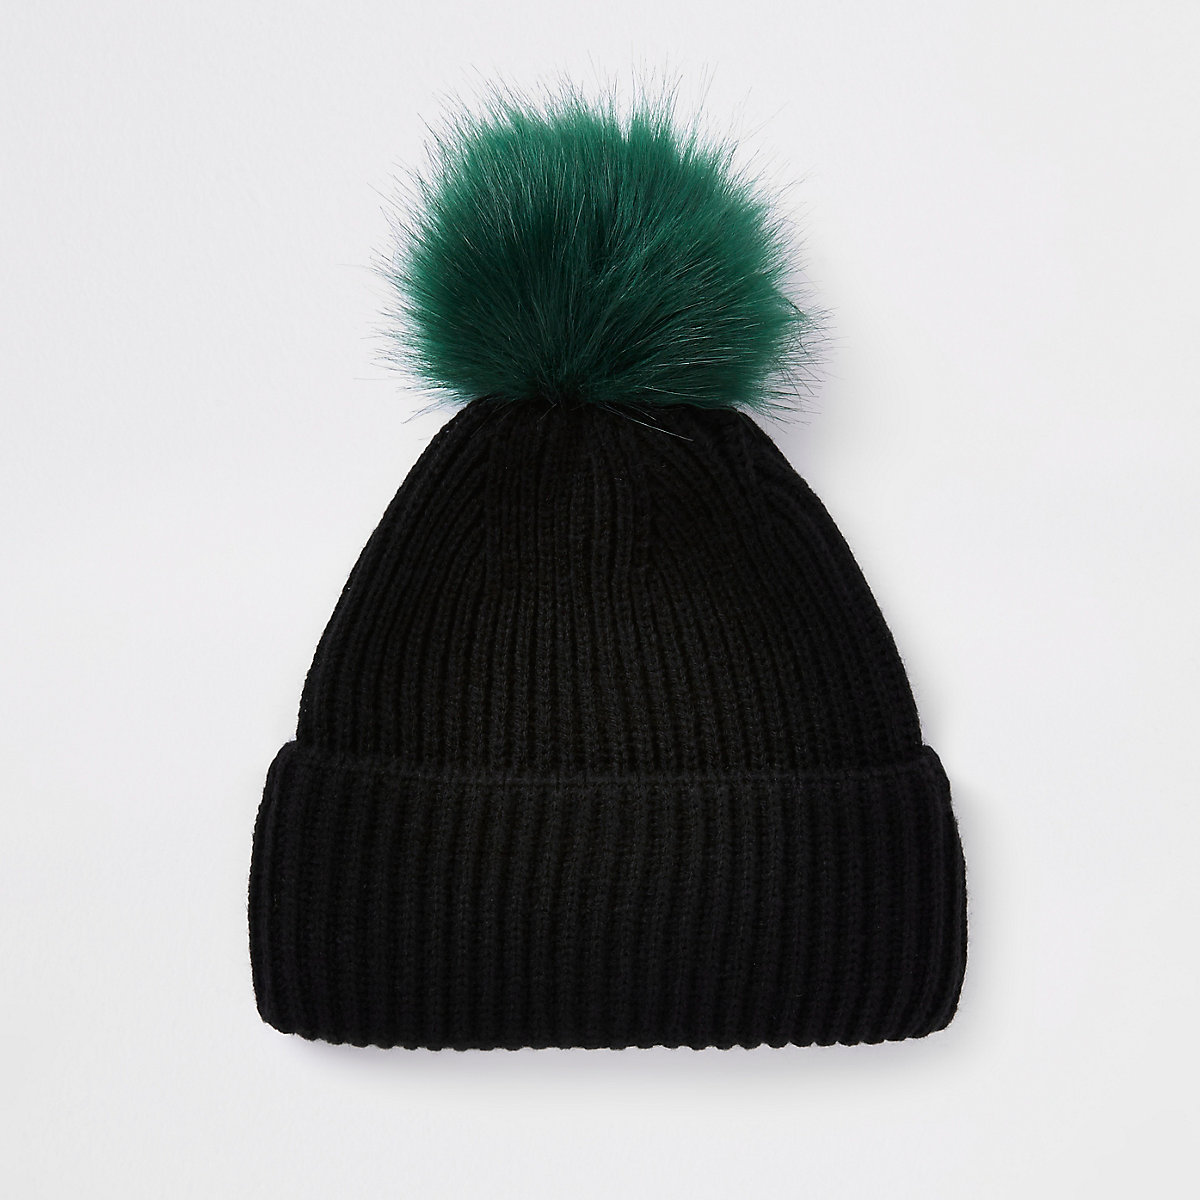 Black faux fur pom pom beanie hat - Hats   Caps - Accessories - men 3a8c7cf0b31